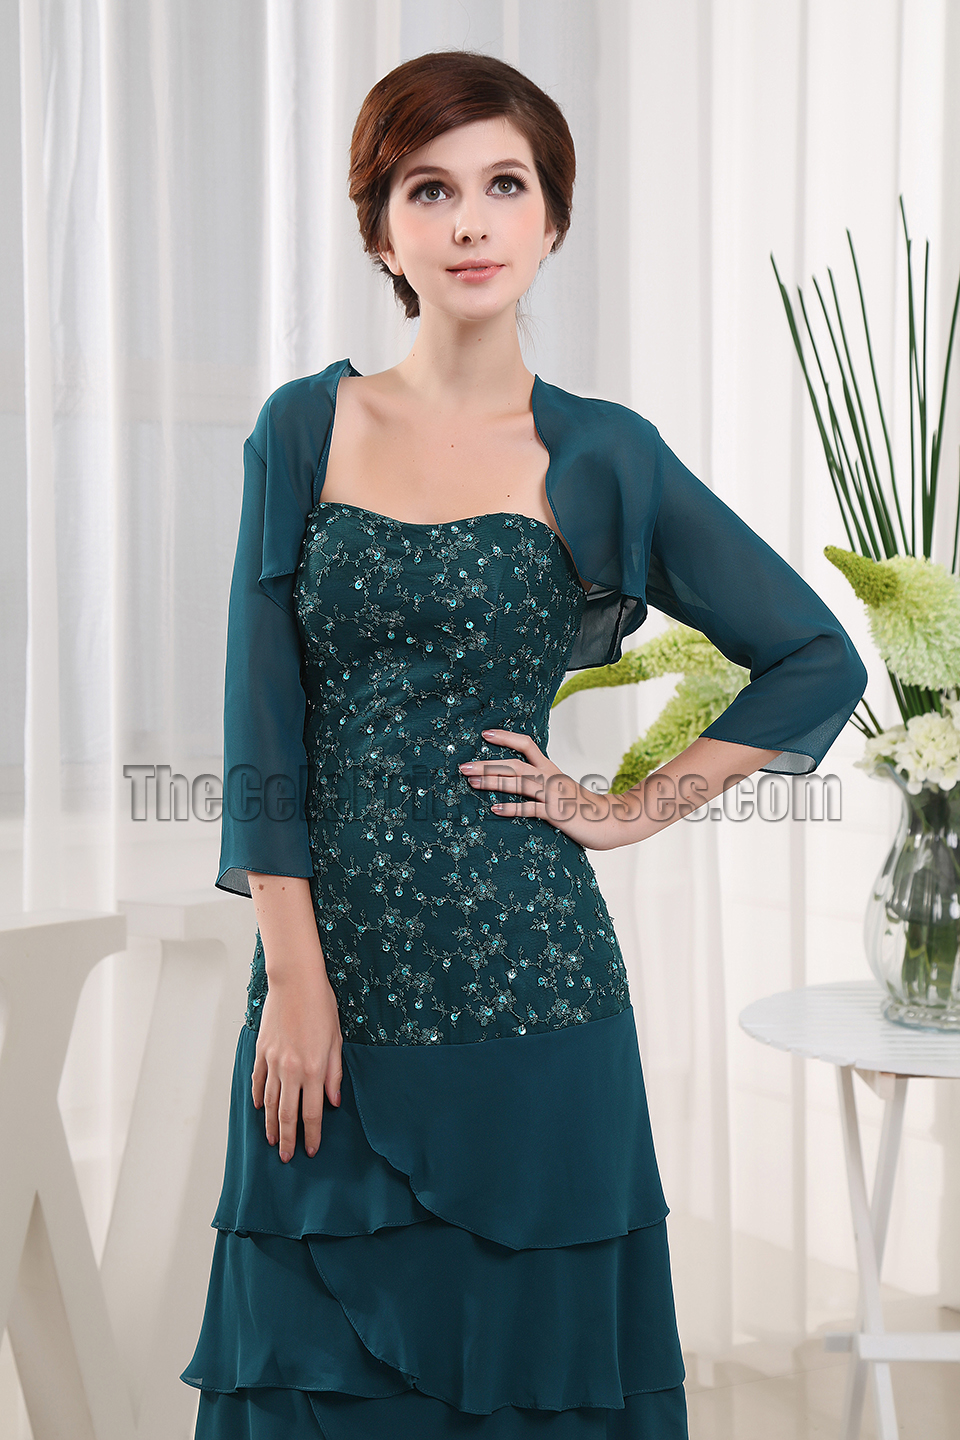 ae49e23b08 Dark Green Chiffon Mother of The Bride Dress Prom Gown - TheCelebrityDresses